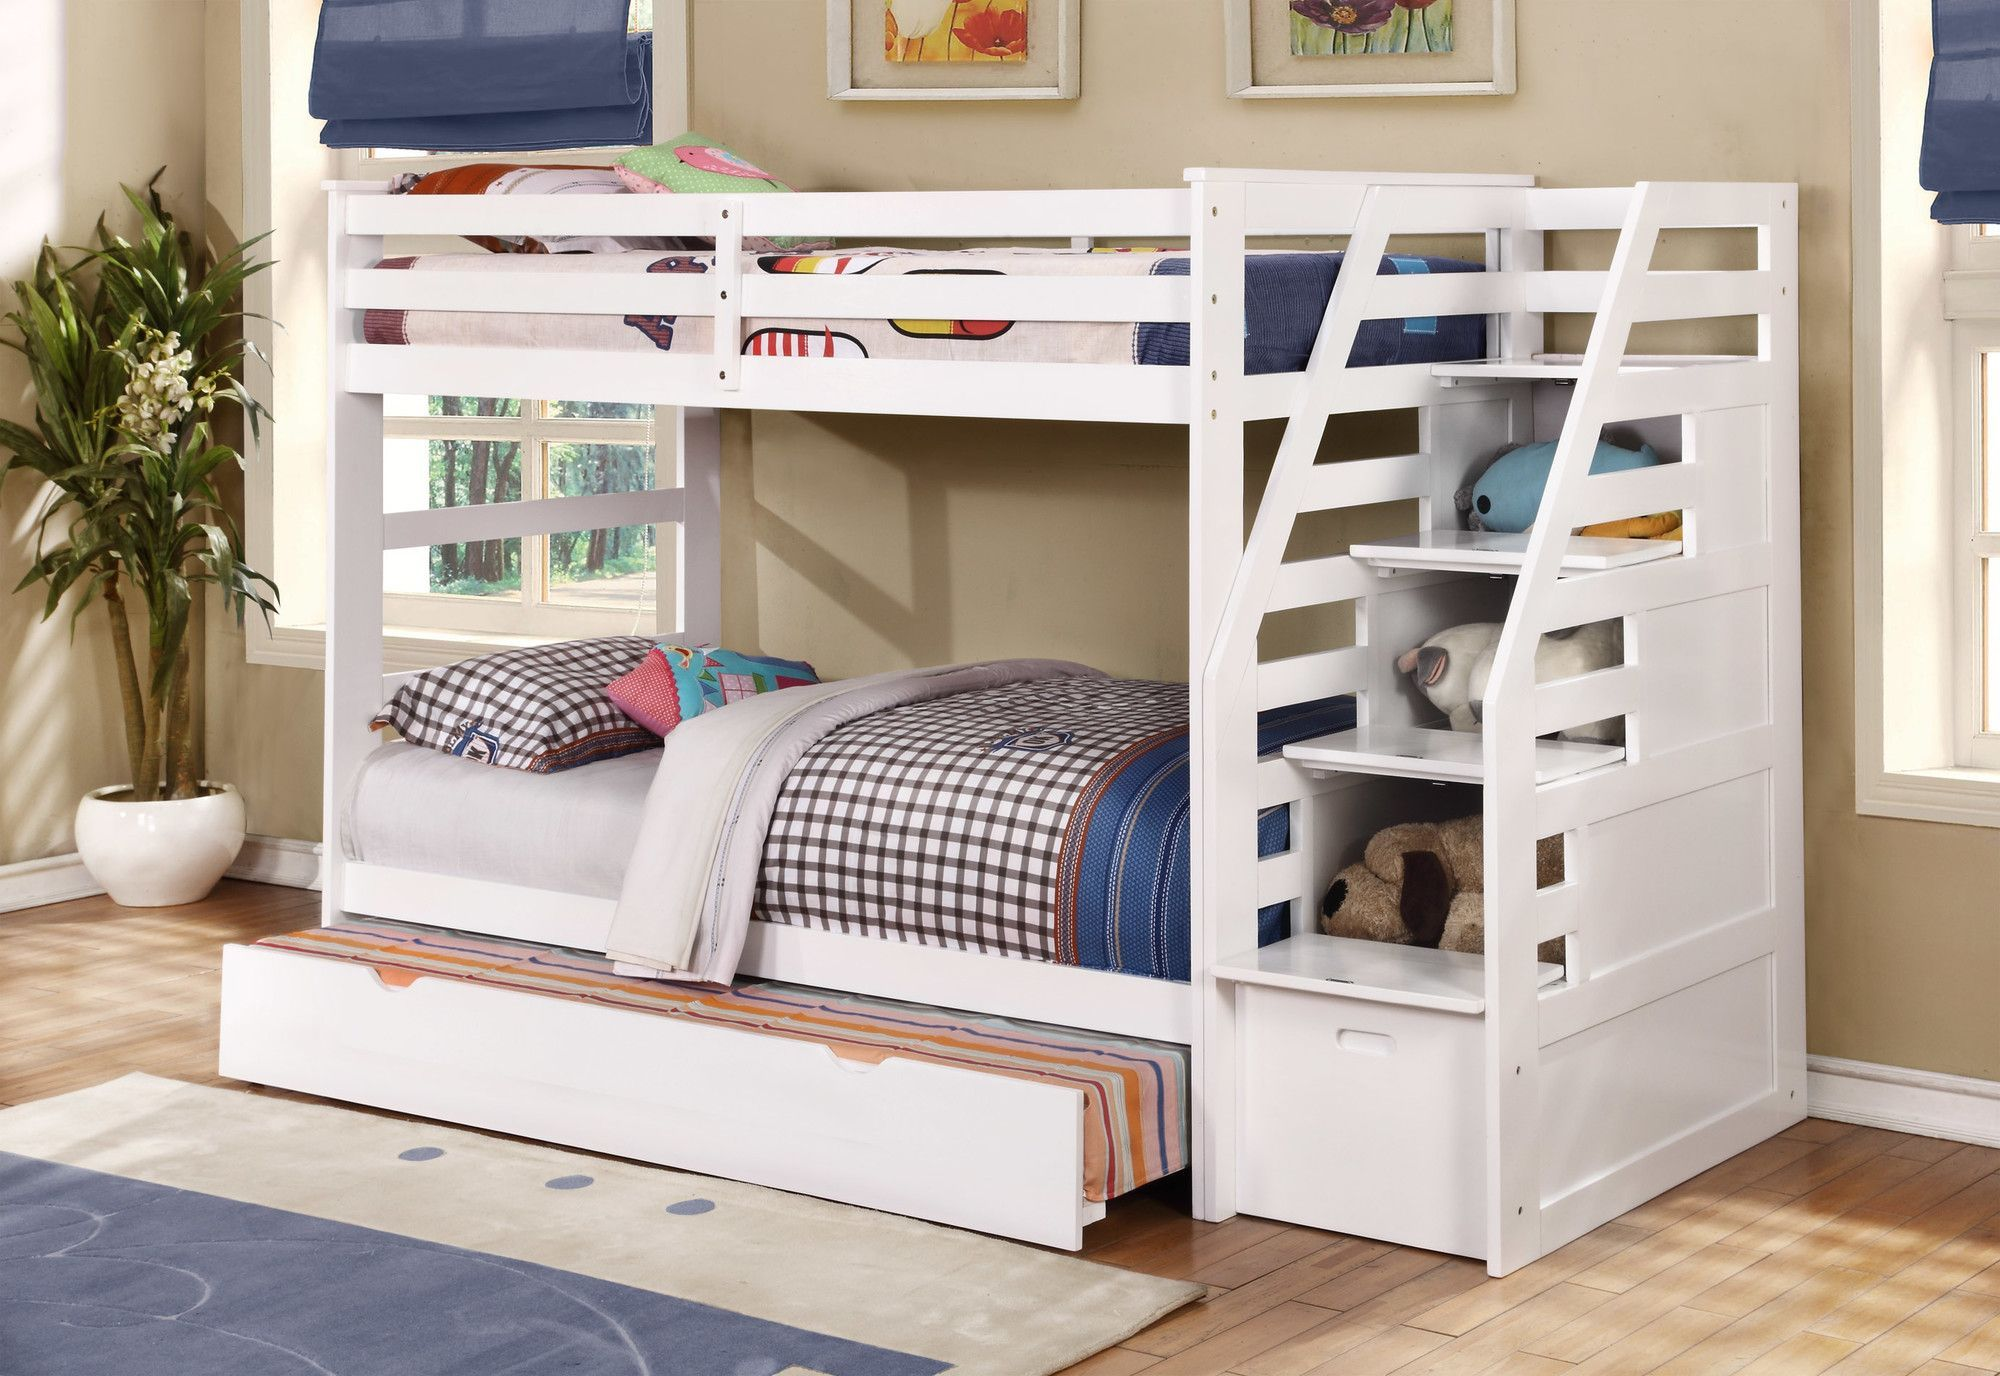 Cosmo Twin Bunk Bed Trundle And Storage Images